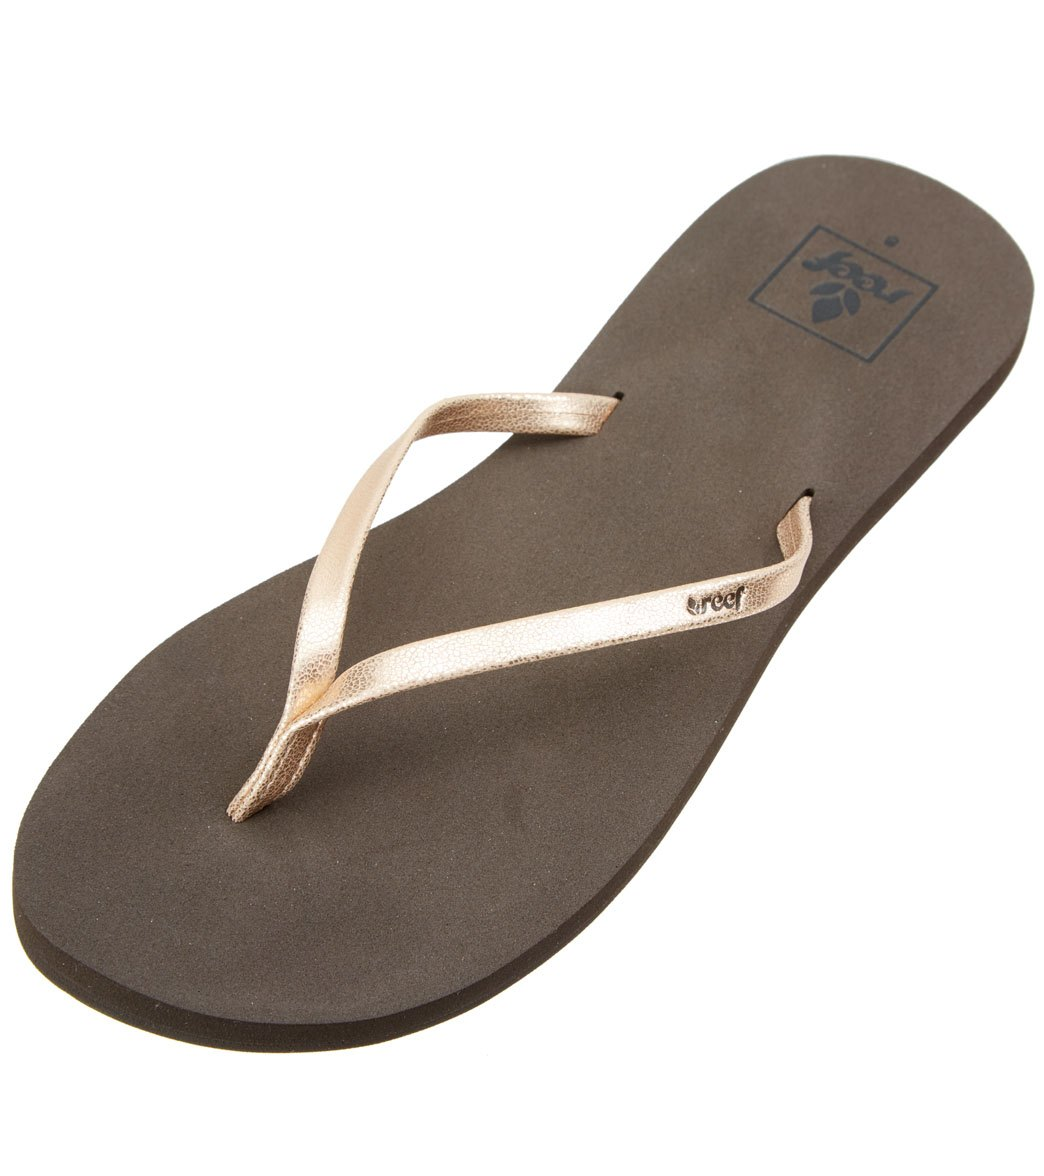 ce9b6aea71a4 Reef Women s Bliss Nights Flip Flop at SwimOutlet.com